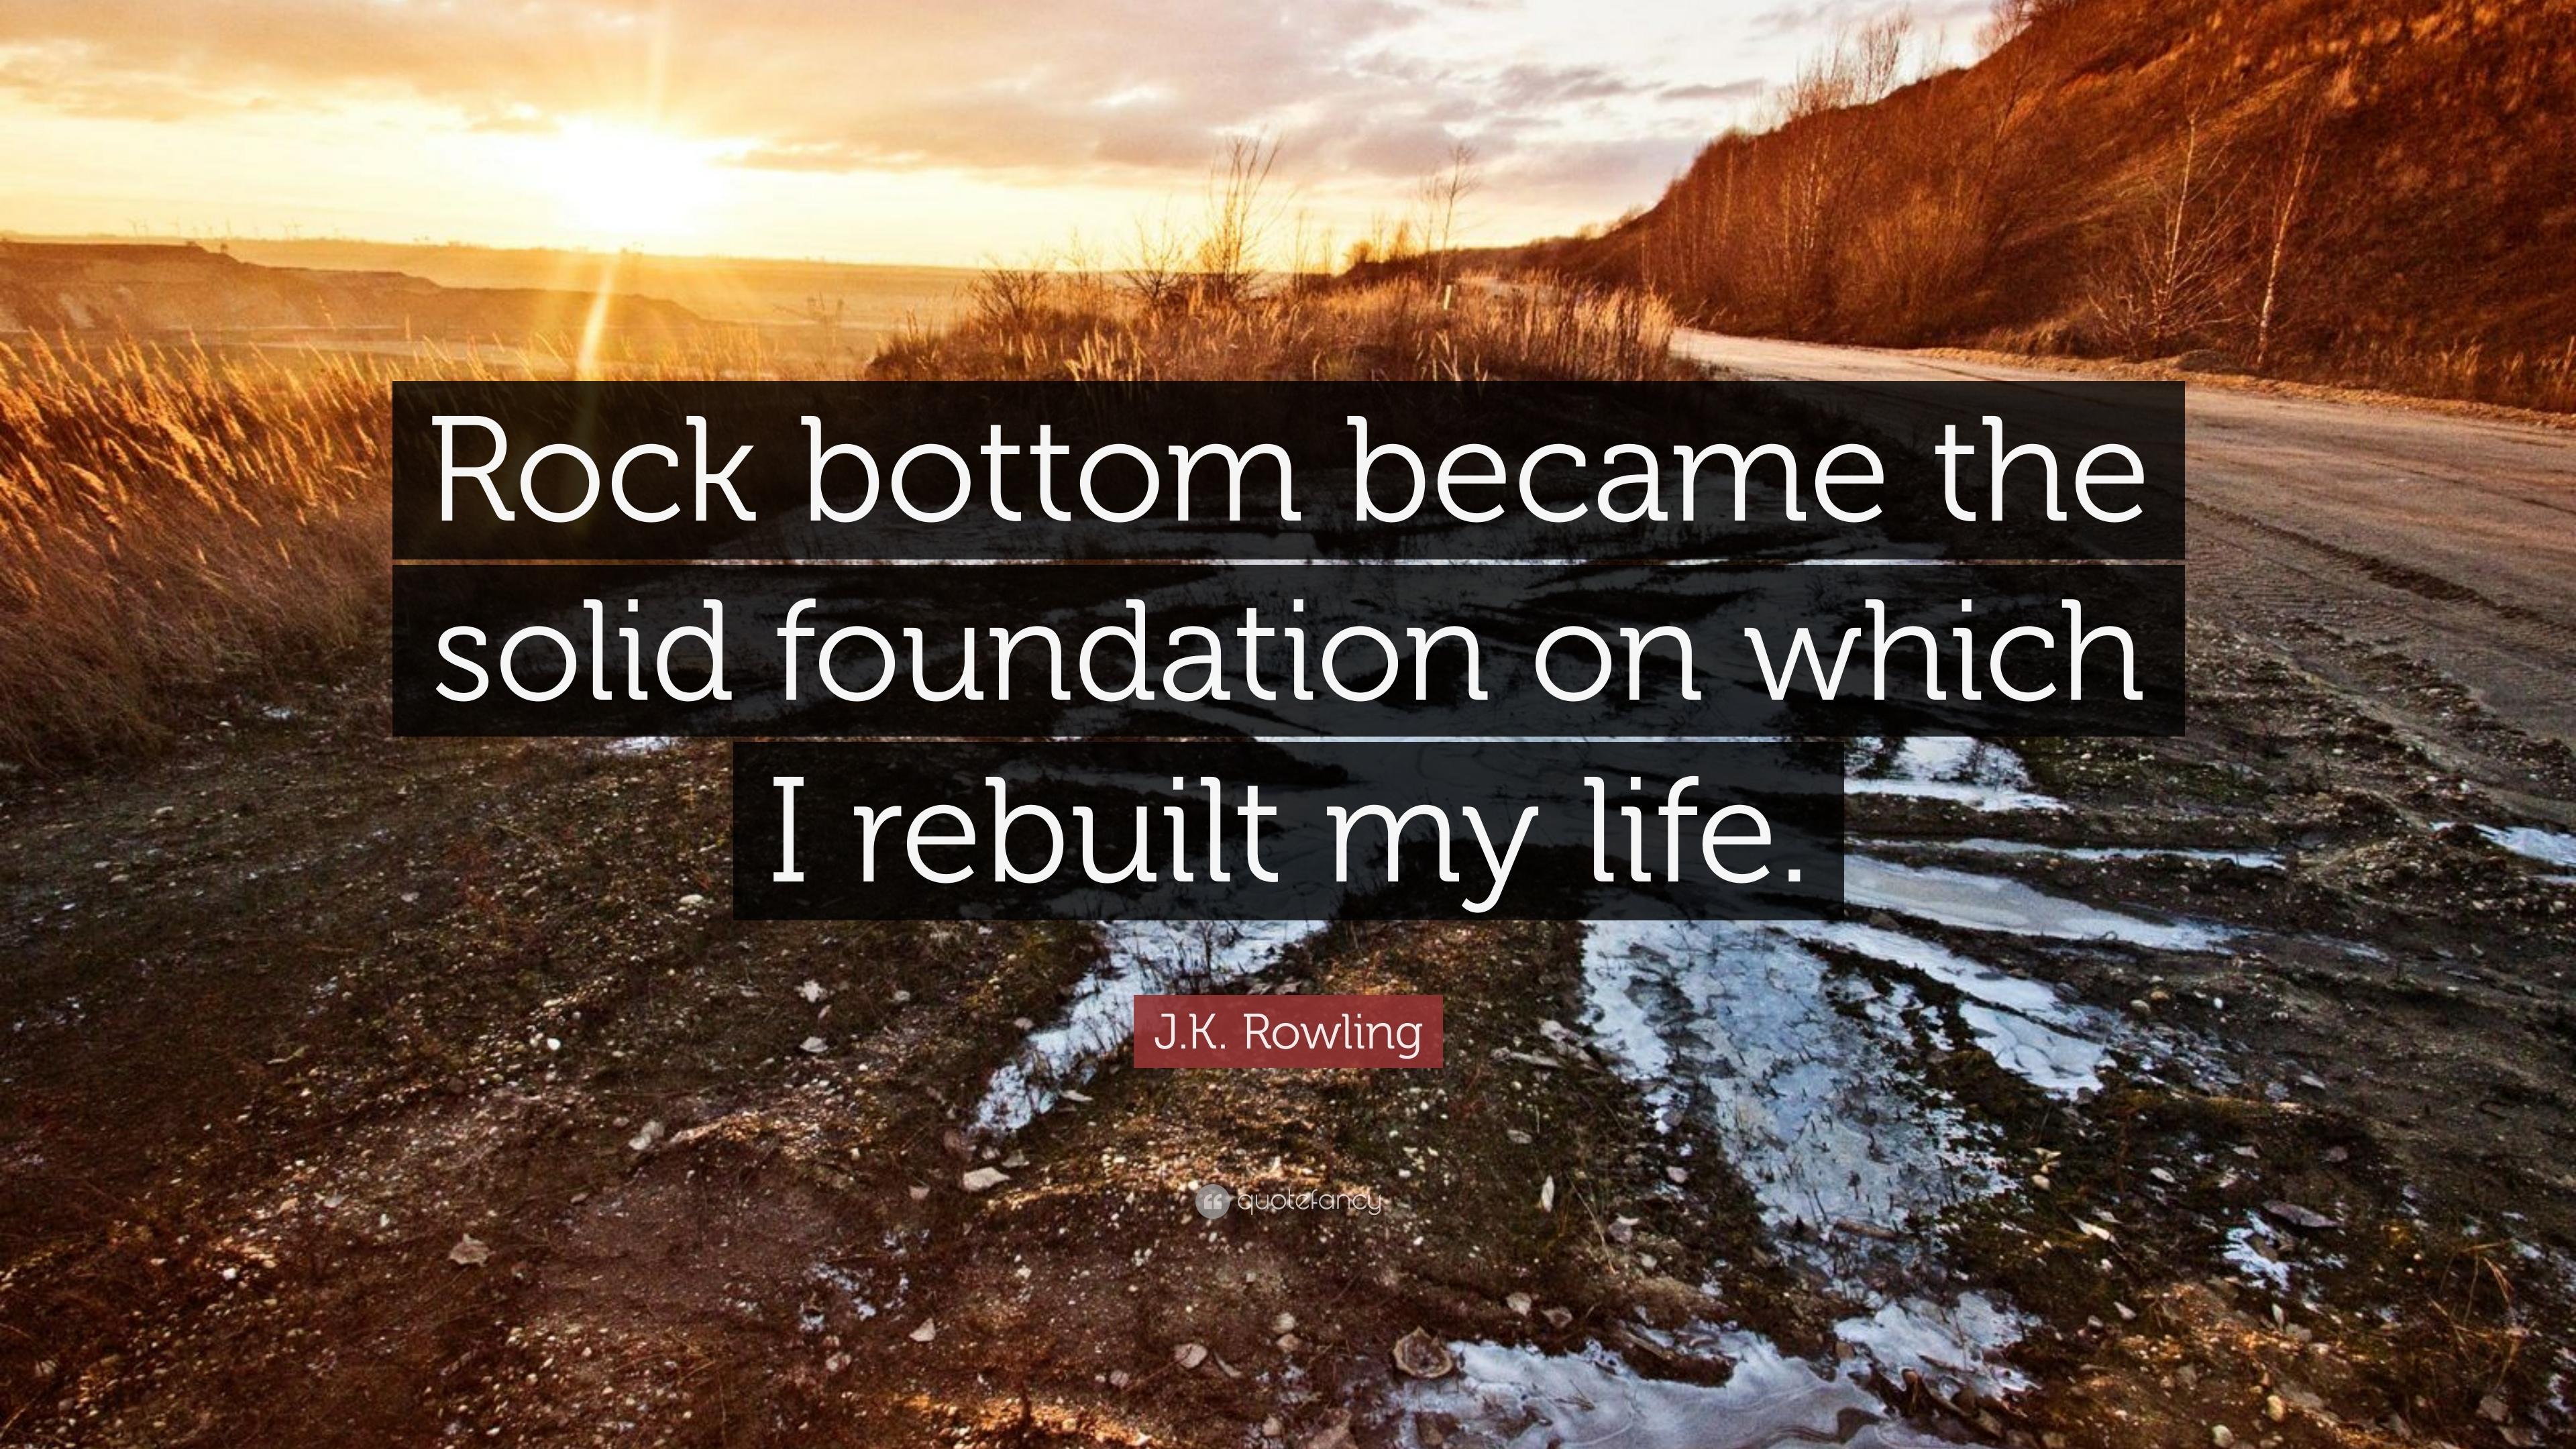 Jk Rowling Quote Rock Bottom Became The Solid Foundation On